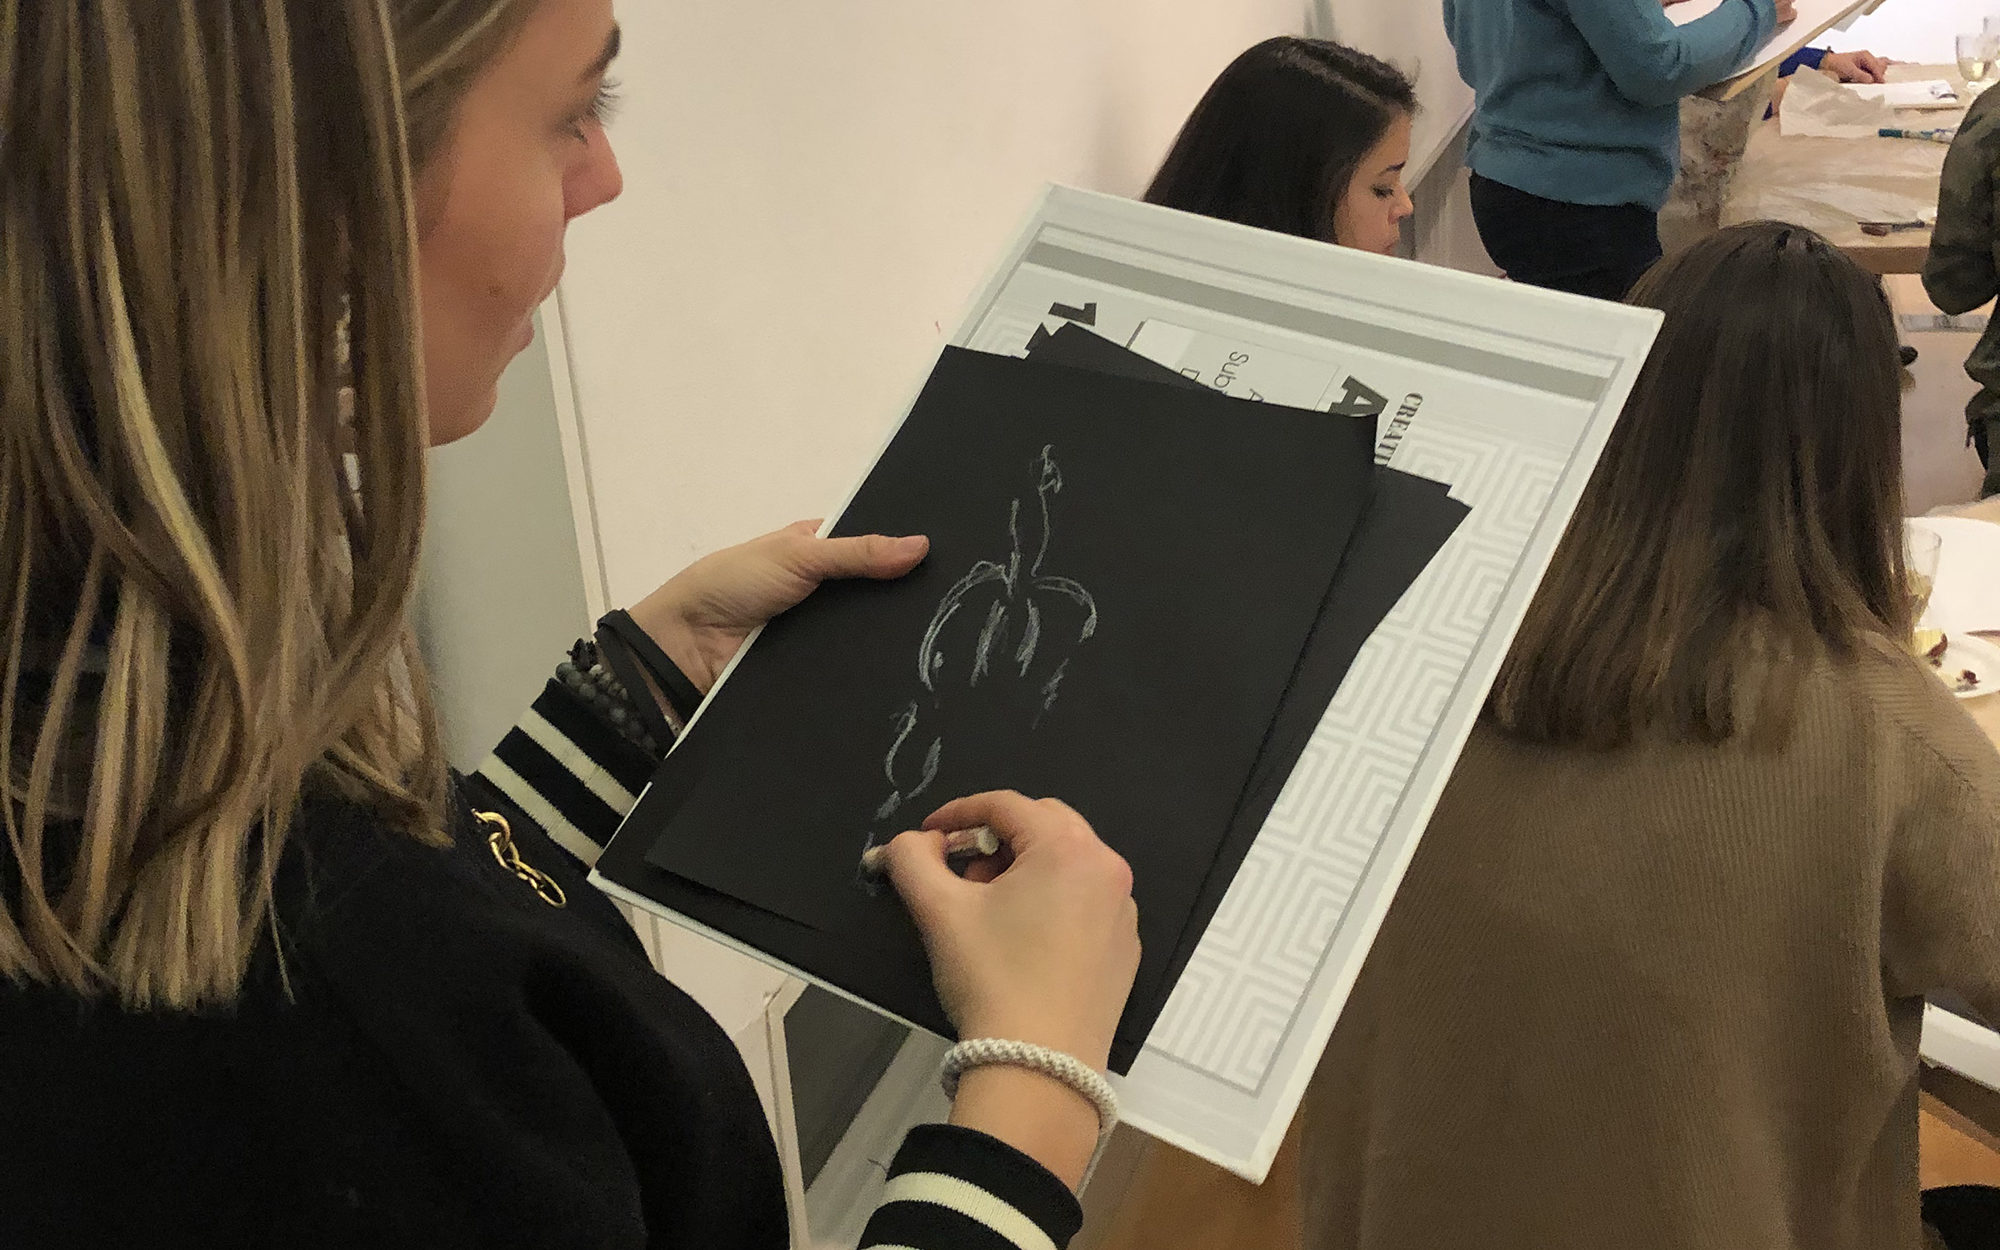 Person draws a sketch on a black piece of paper